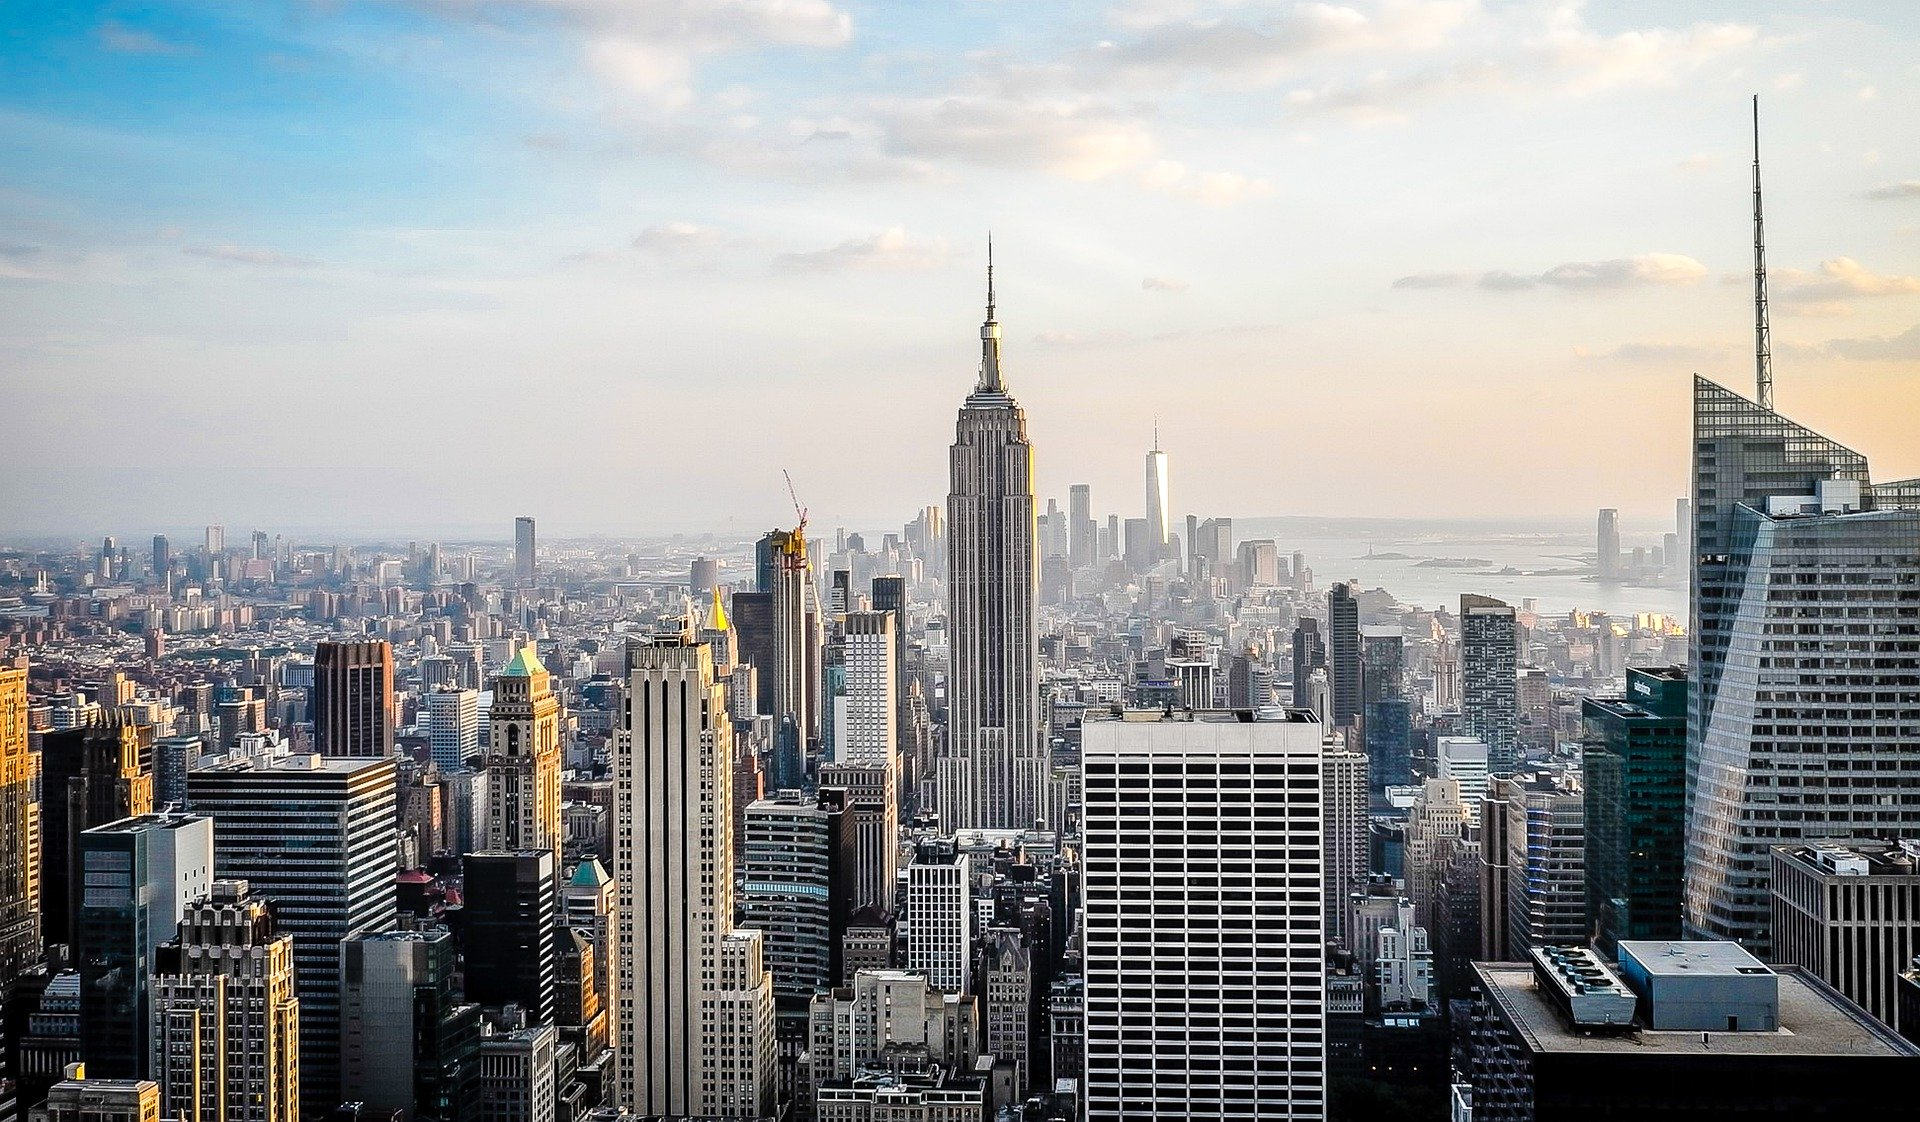 A view of New York.